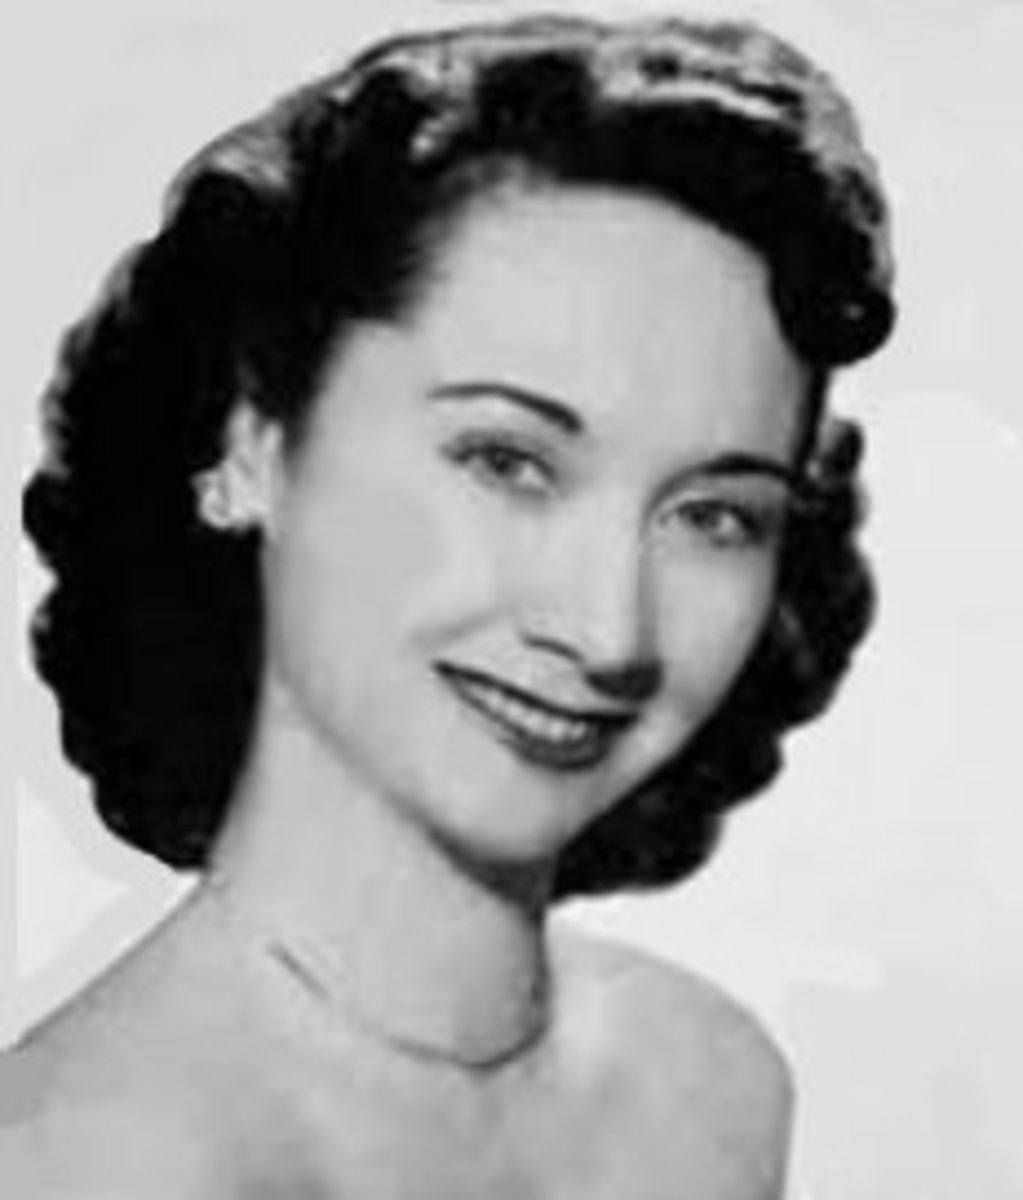 jfk-and-the-mysterious-death-of-columnist-dorothy-kilgallen